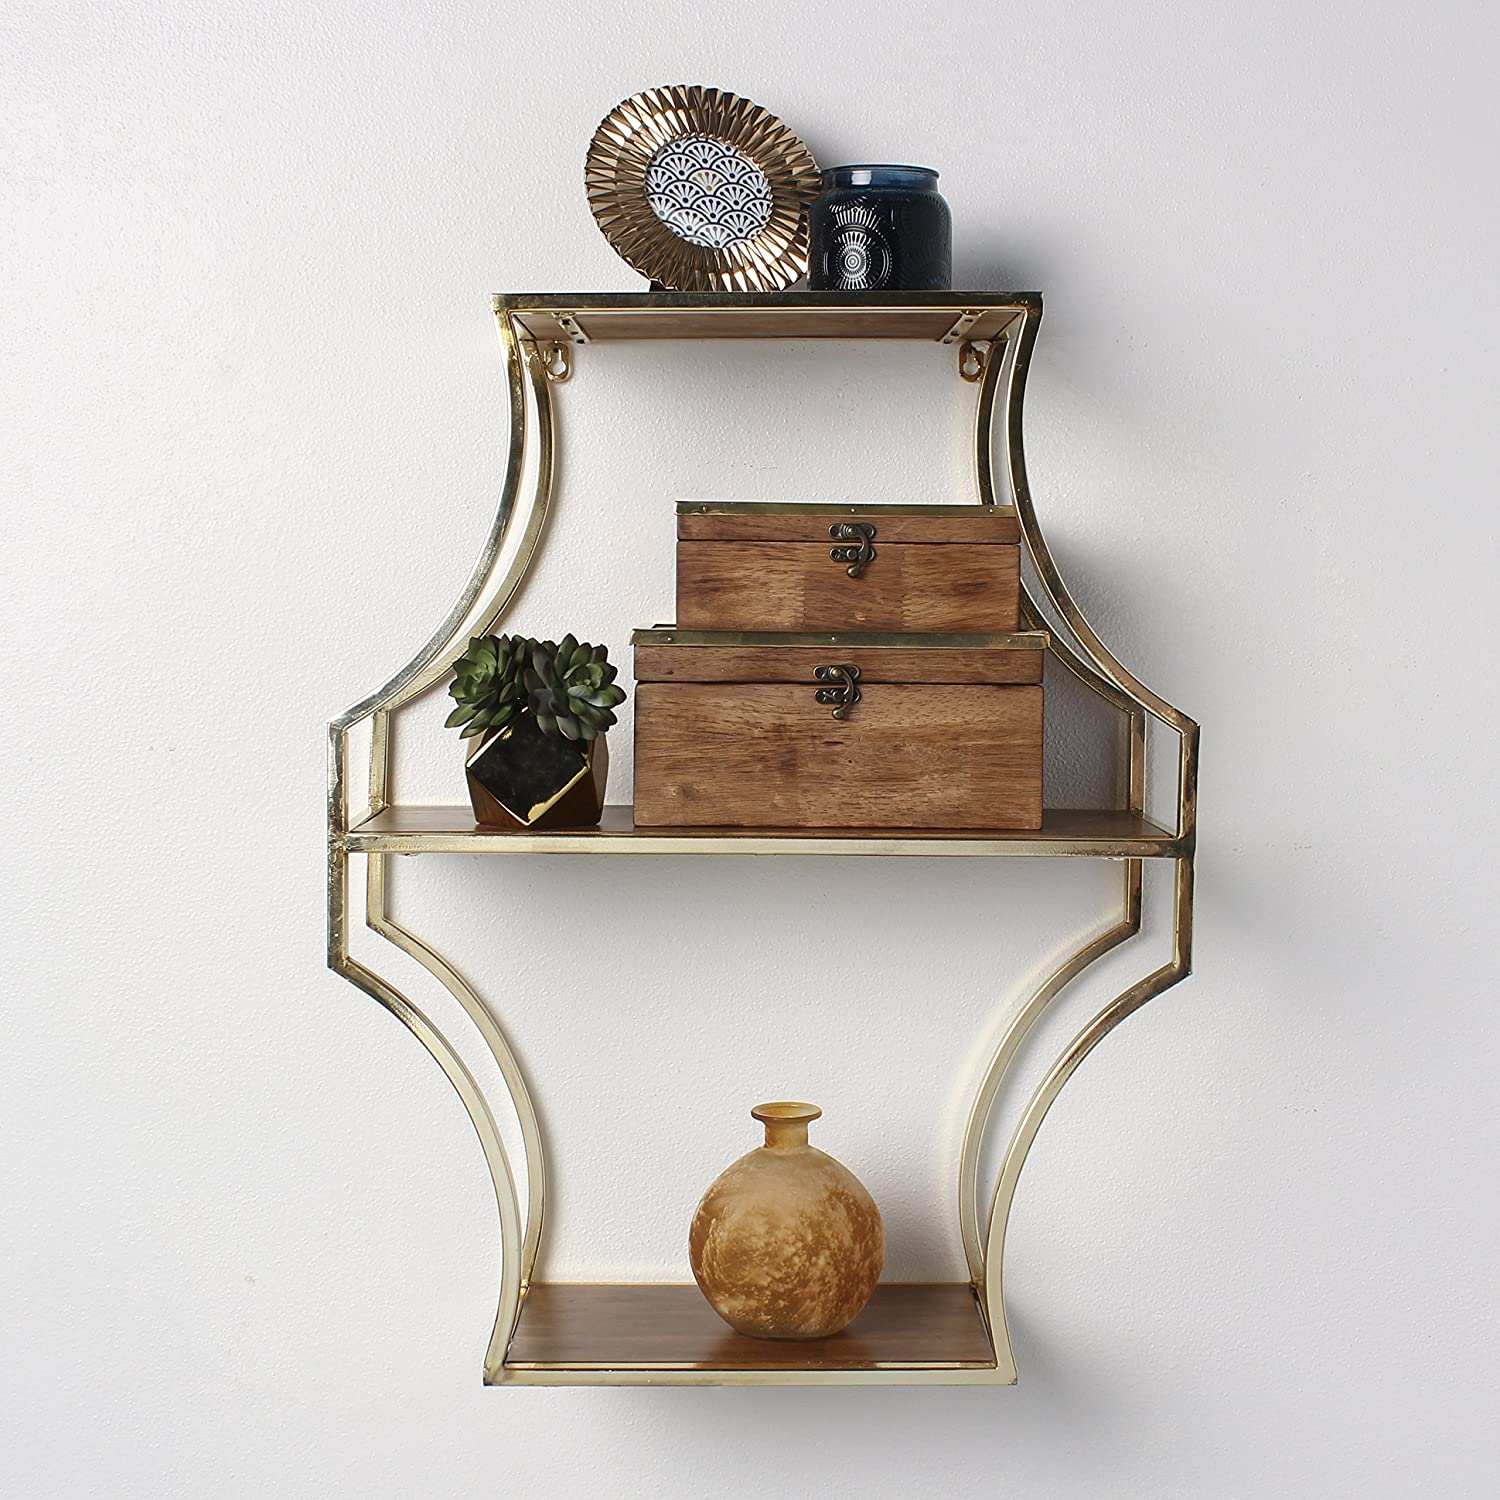 Kate And Laurel Liara Wood And Metal Scalloped Wall Shelf 3 Shelves Walnut  Brown And Gold